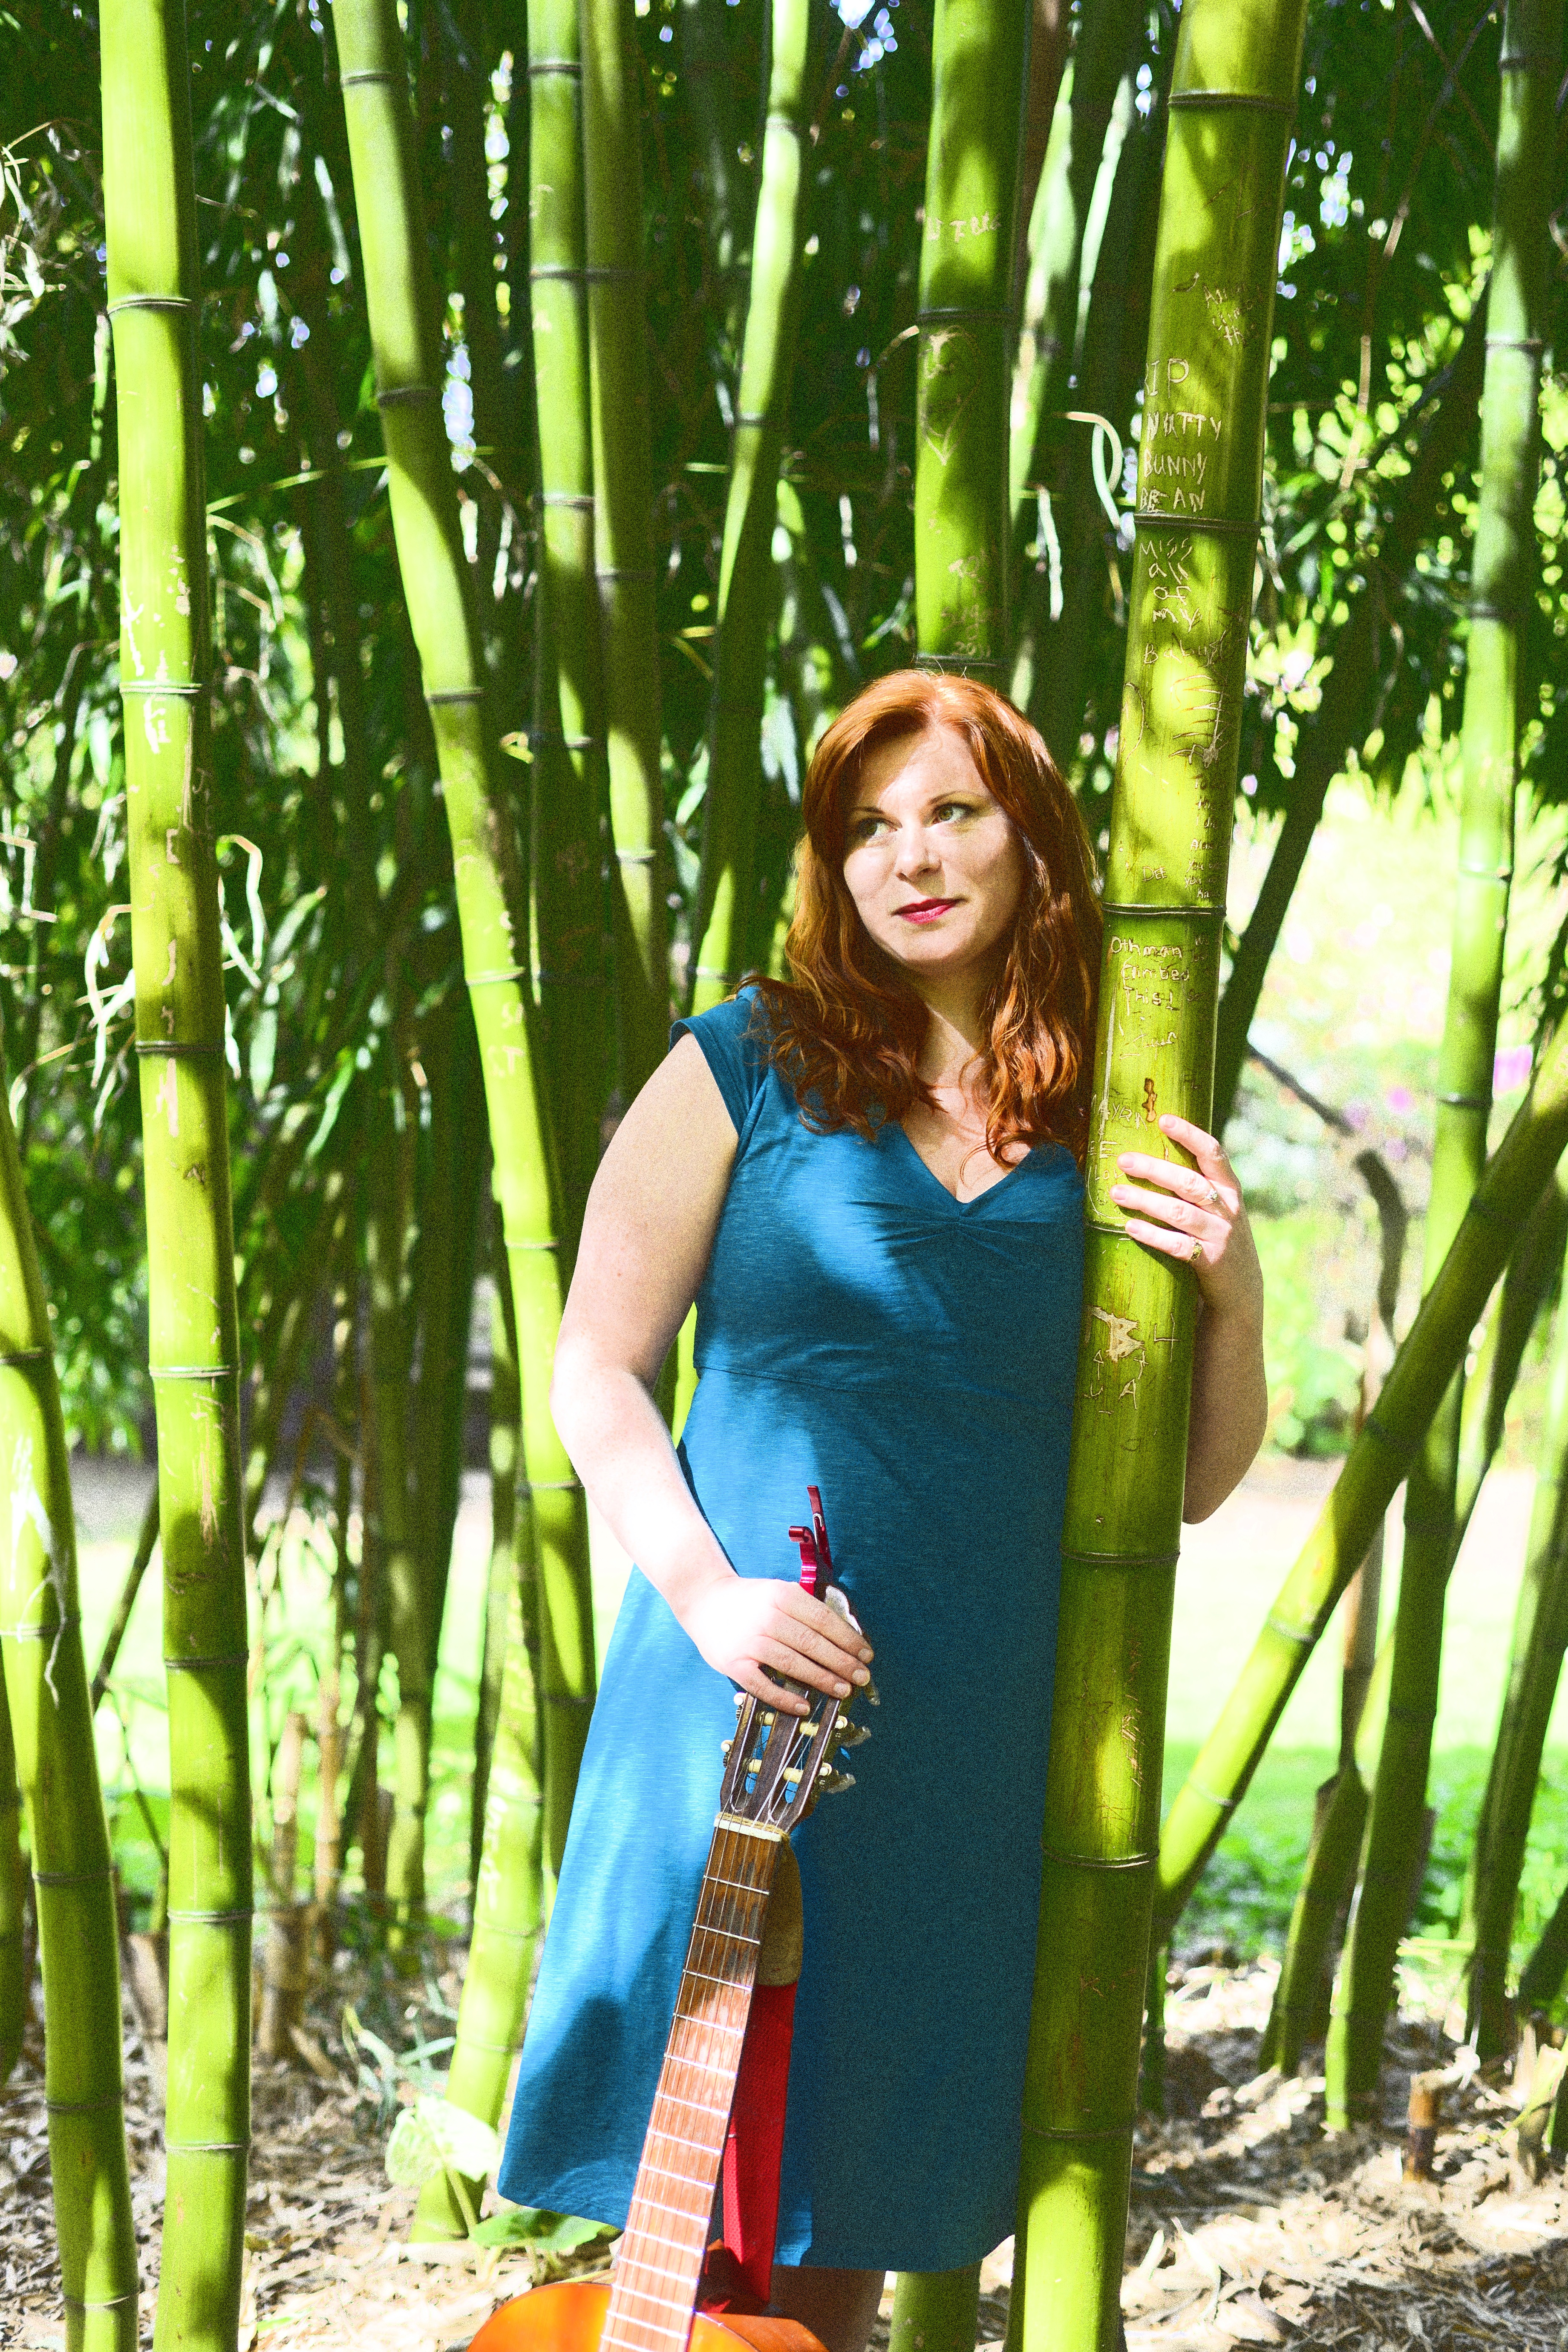 Lindsay - standing in bamboo